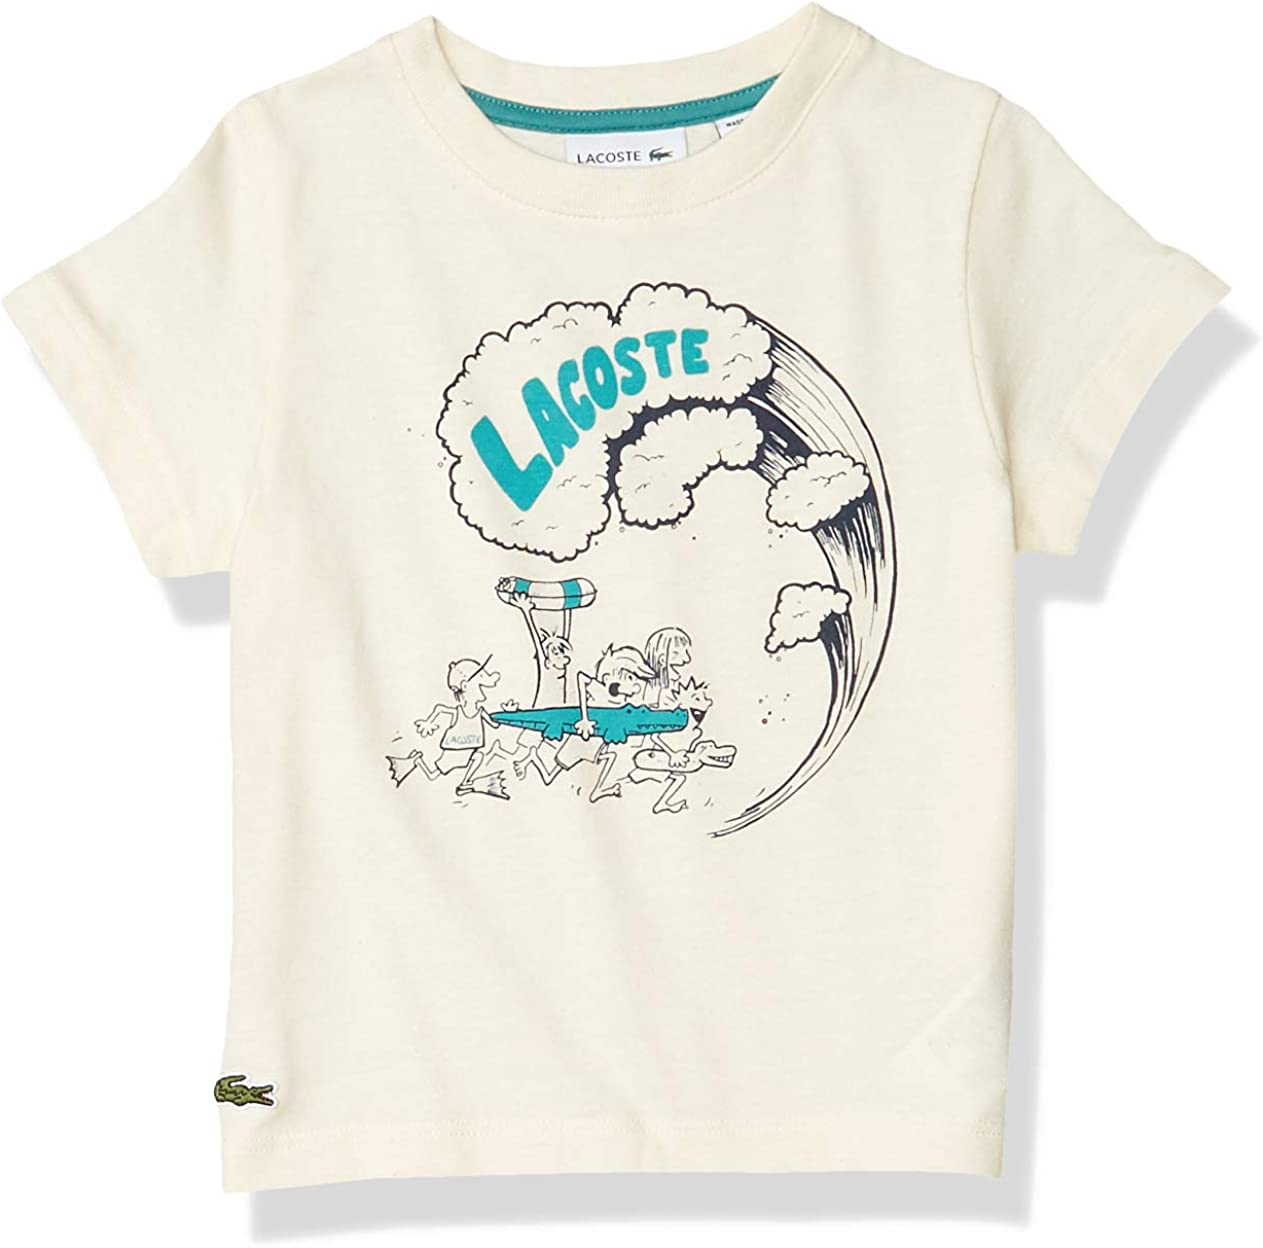 Lacoste Toddler Boys' Short Sleeve Summer Graphic Jersey T-Shirt